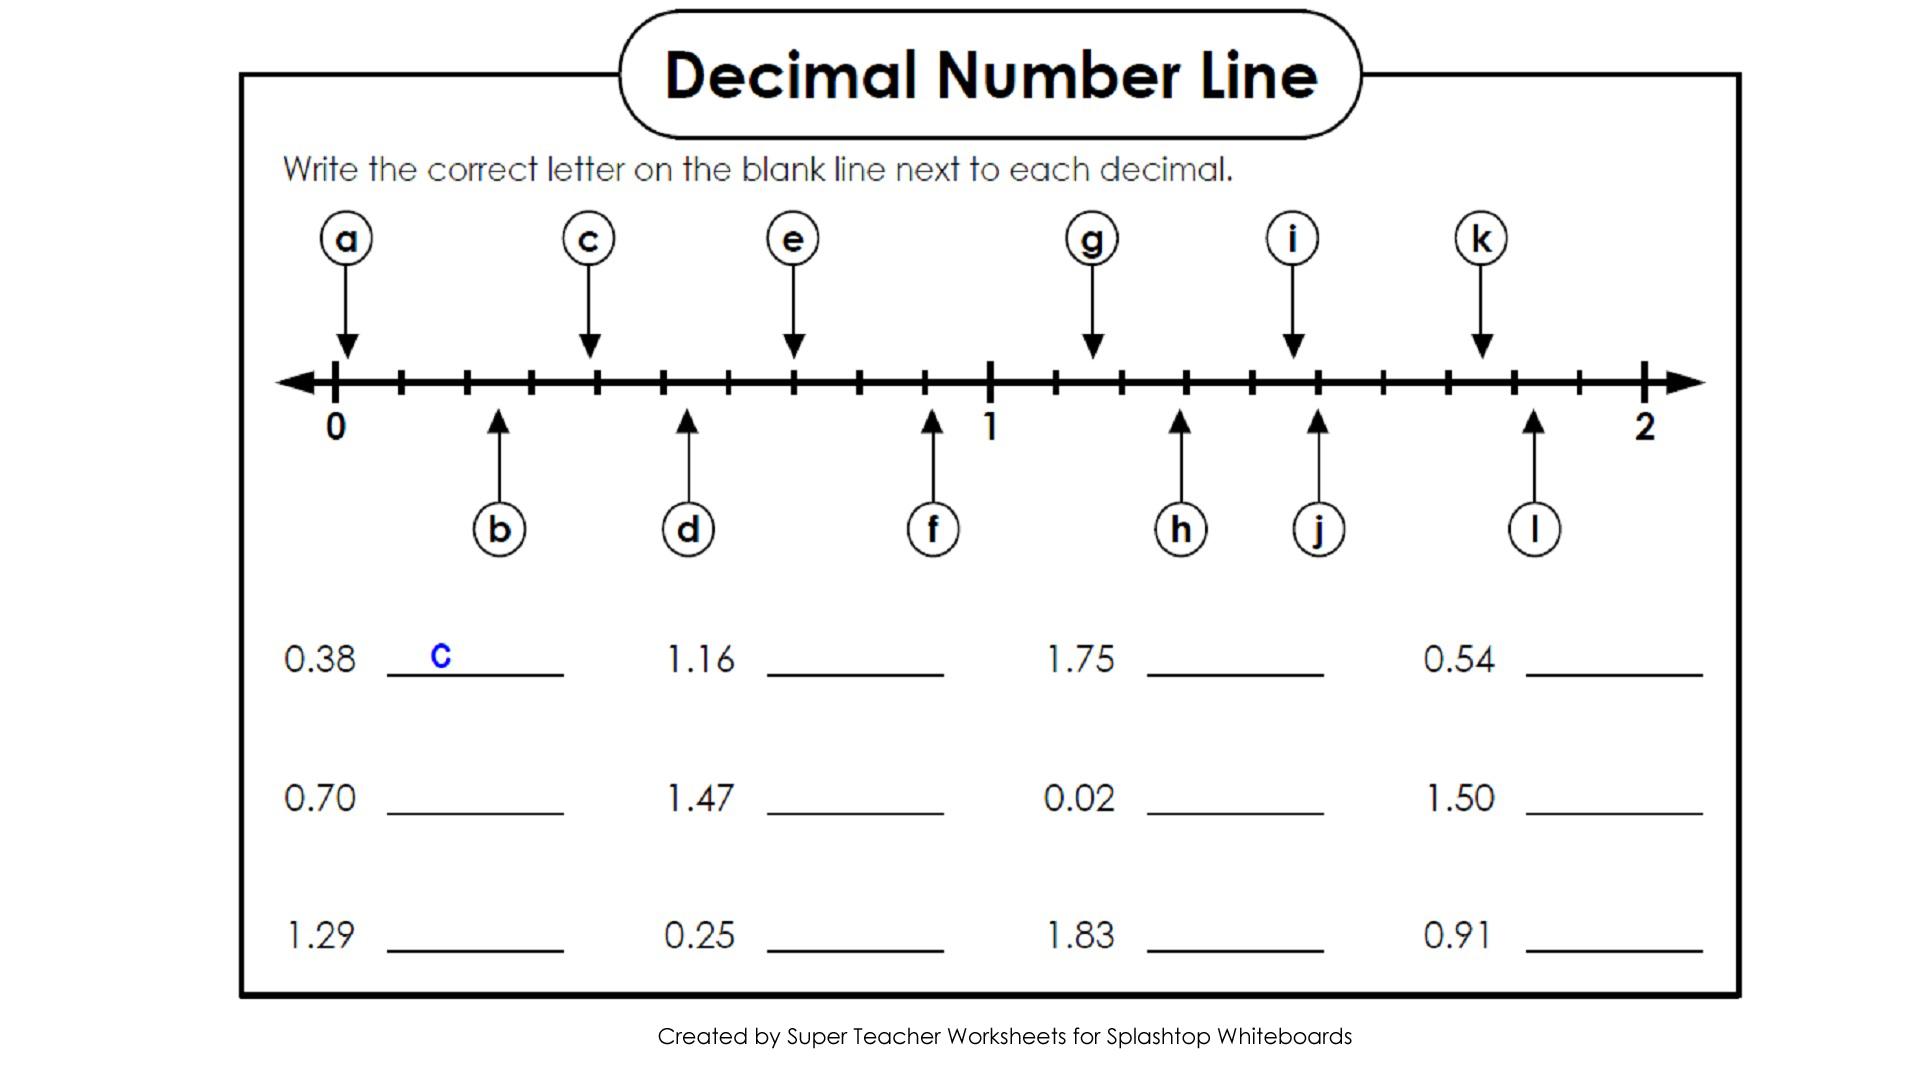 decimal value with the correct letter on the number line. All decimal ...